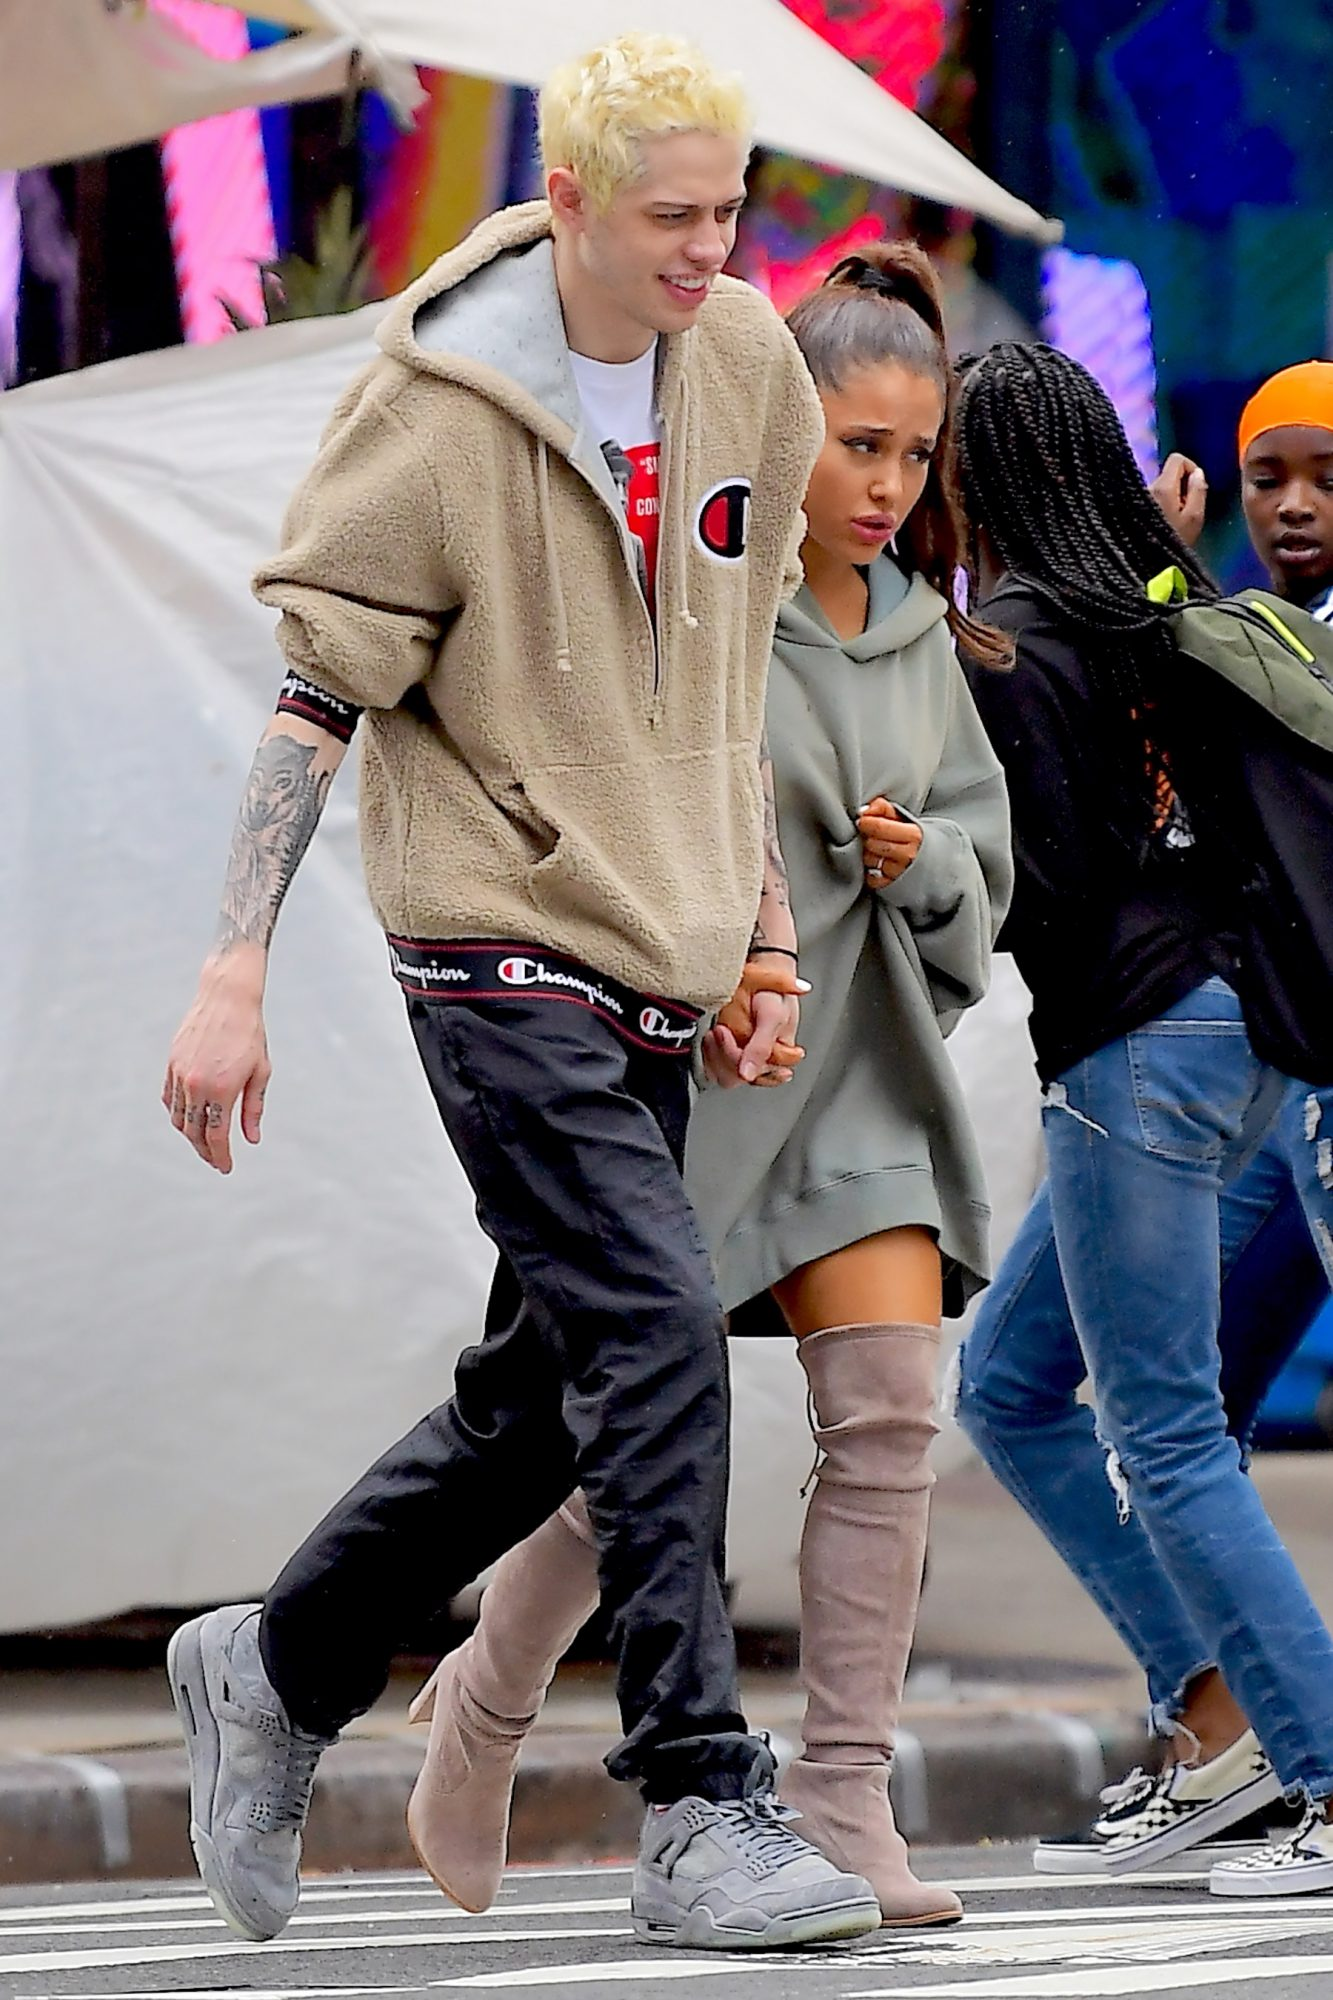 EXCLUSIVE: **PREMIUM EXCLUSIVE RATES APPLY** No Web Till 11AM PST 19th Sept 2018 * Ariana Grande Leans on Pete Davidson for Support in First Public Outing since Mac Miller's Death